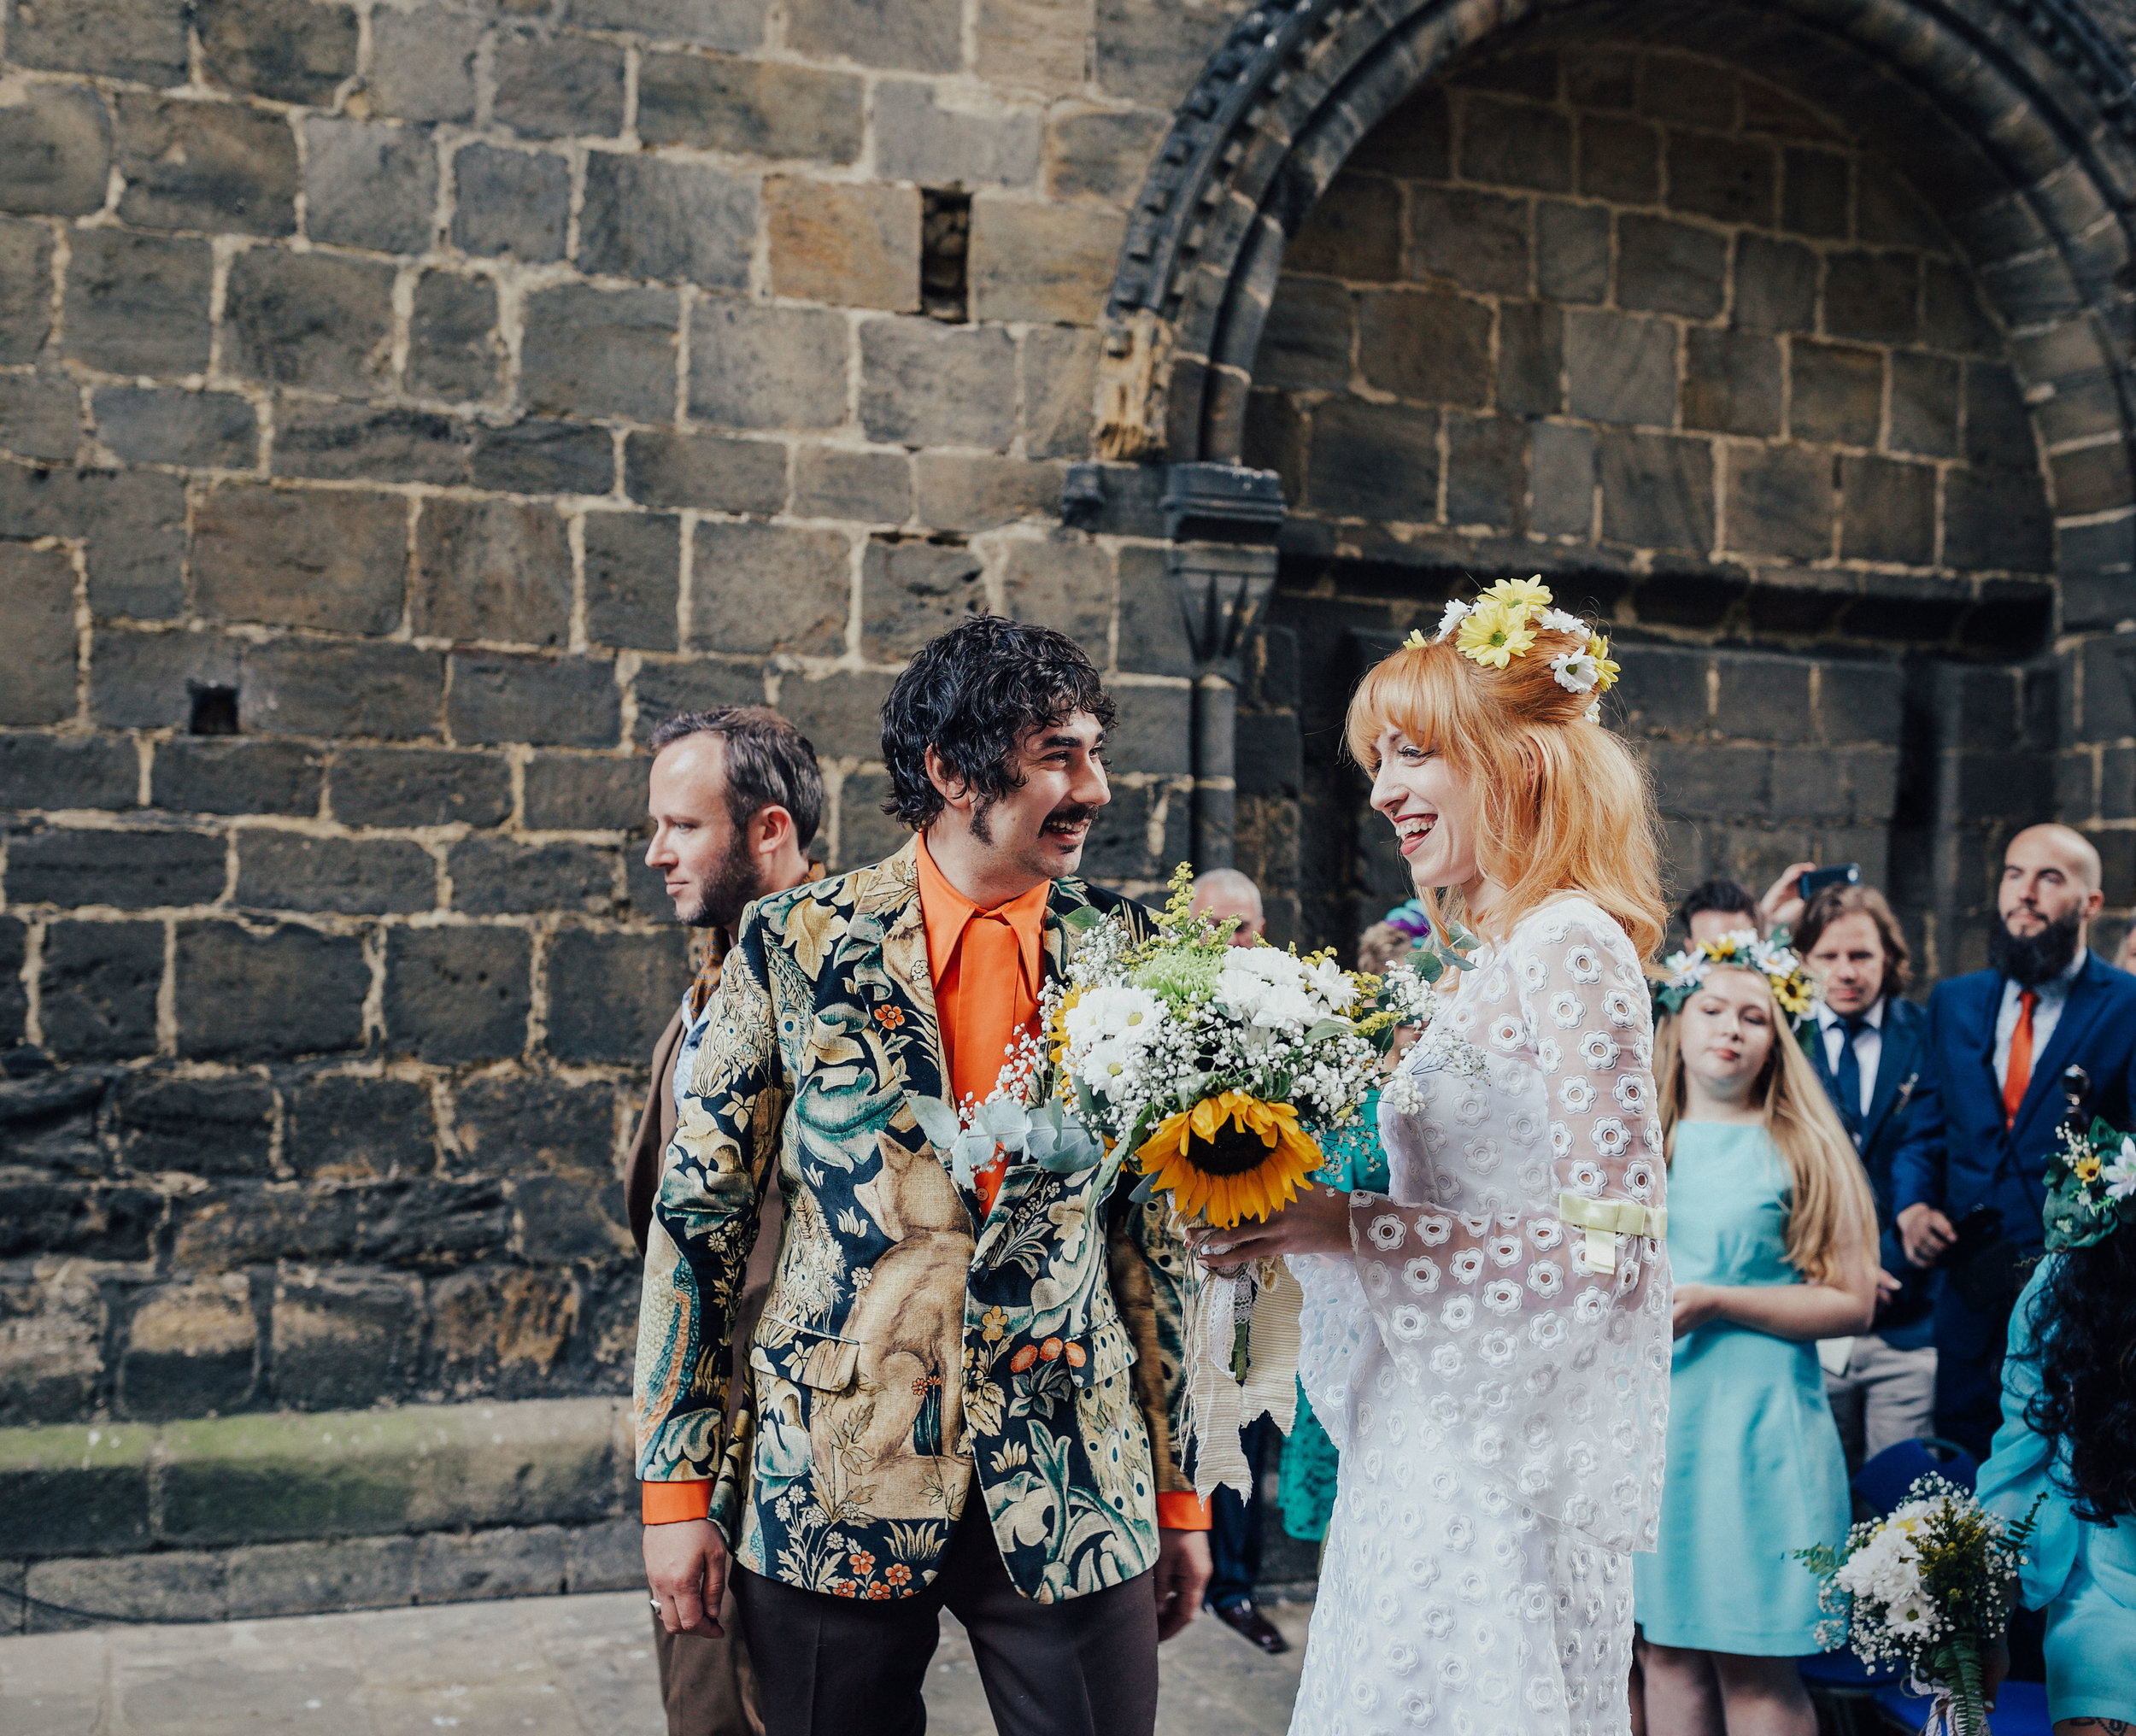 ALTERNATIVE_WEDDING_PHOTOGRAPHY_LEEDS_UK_PJ_PHILLIPS_PHOTOGRAPHY_58.jpg